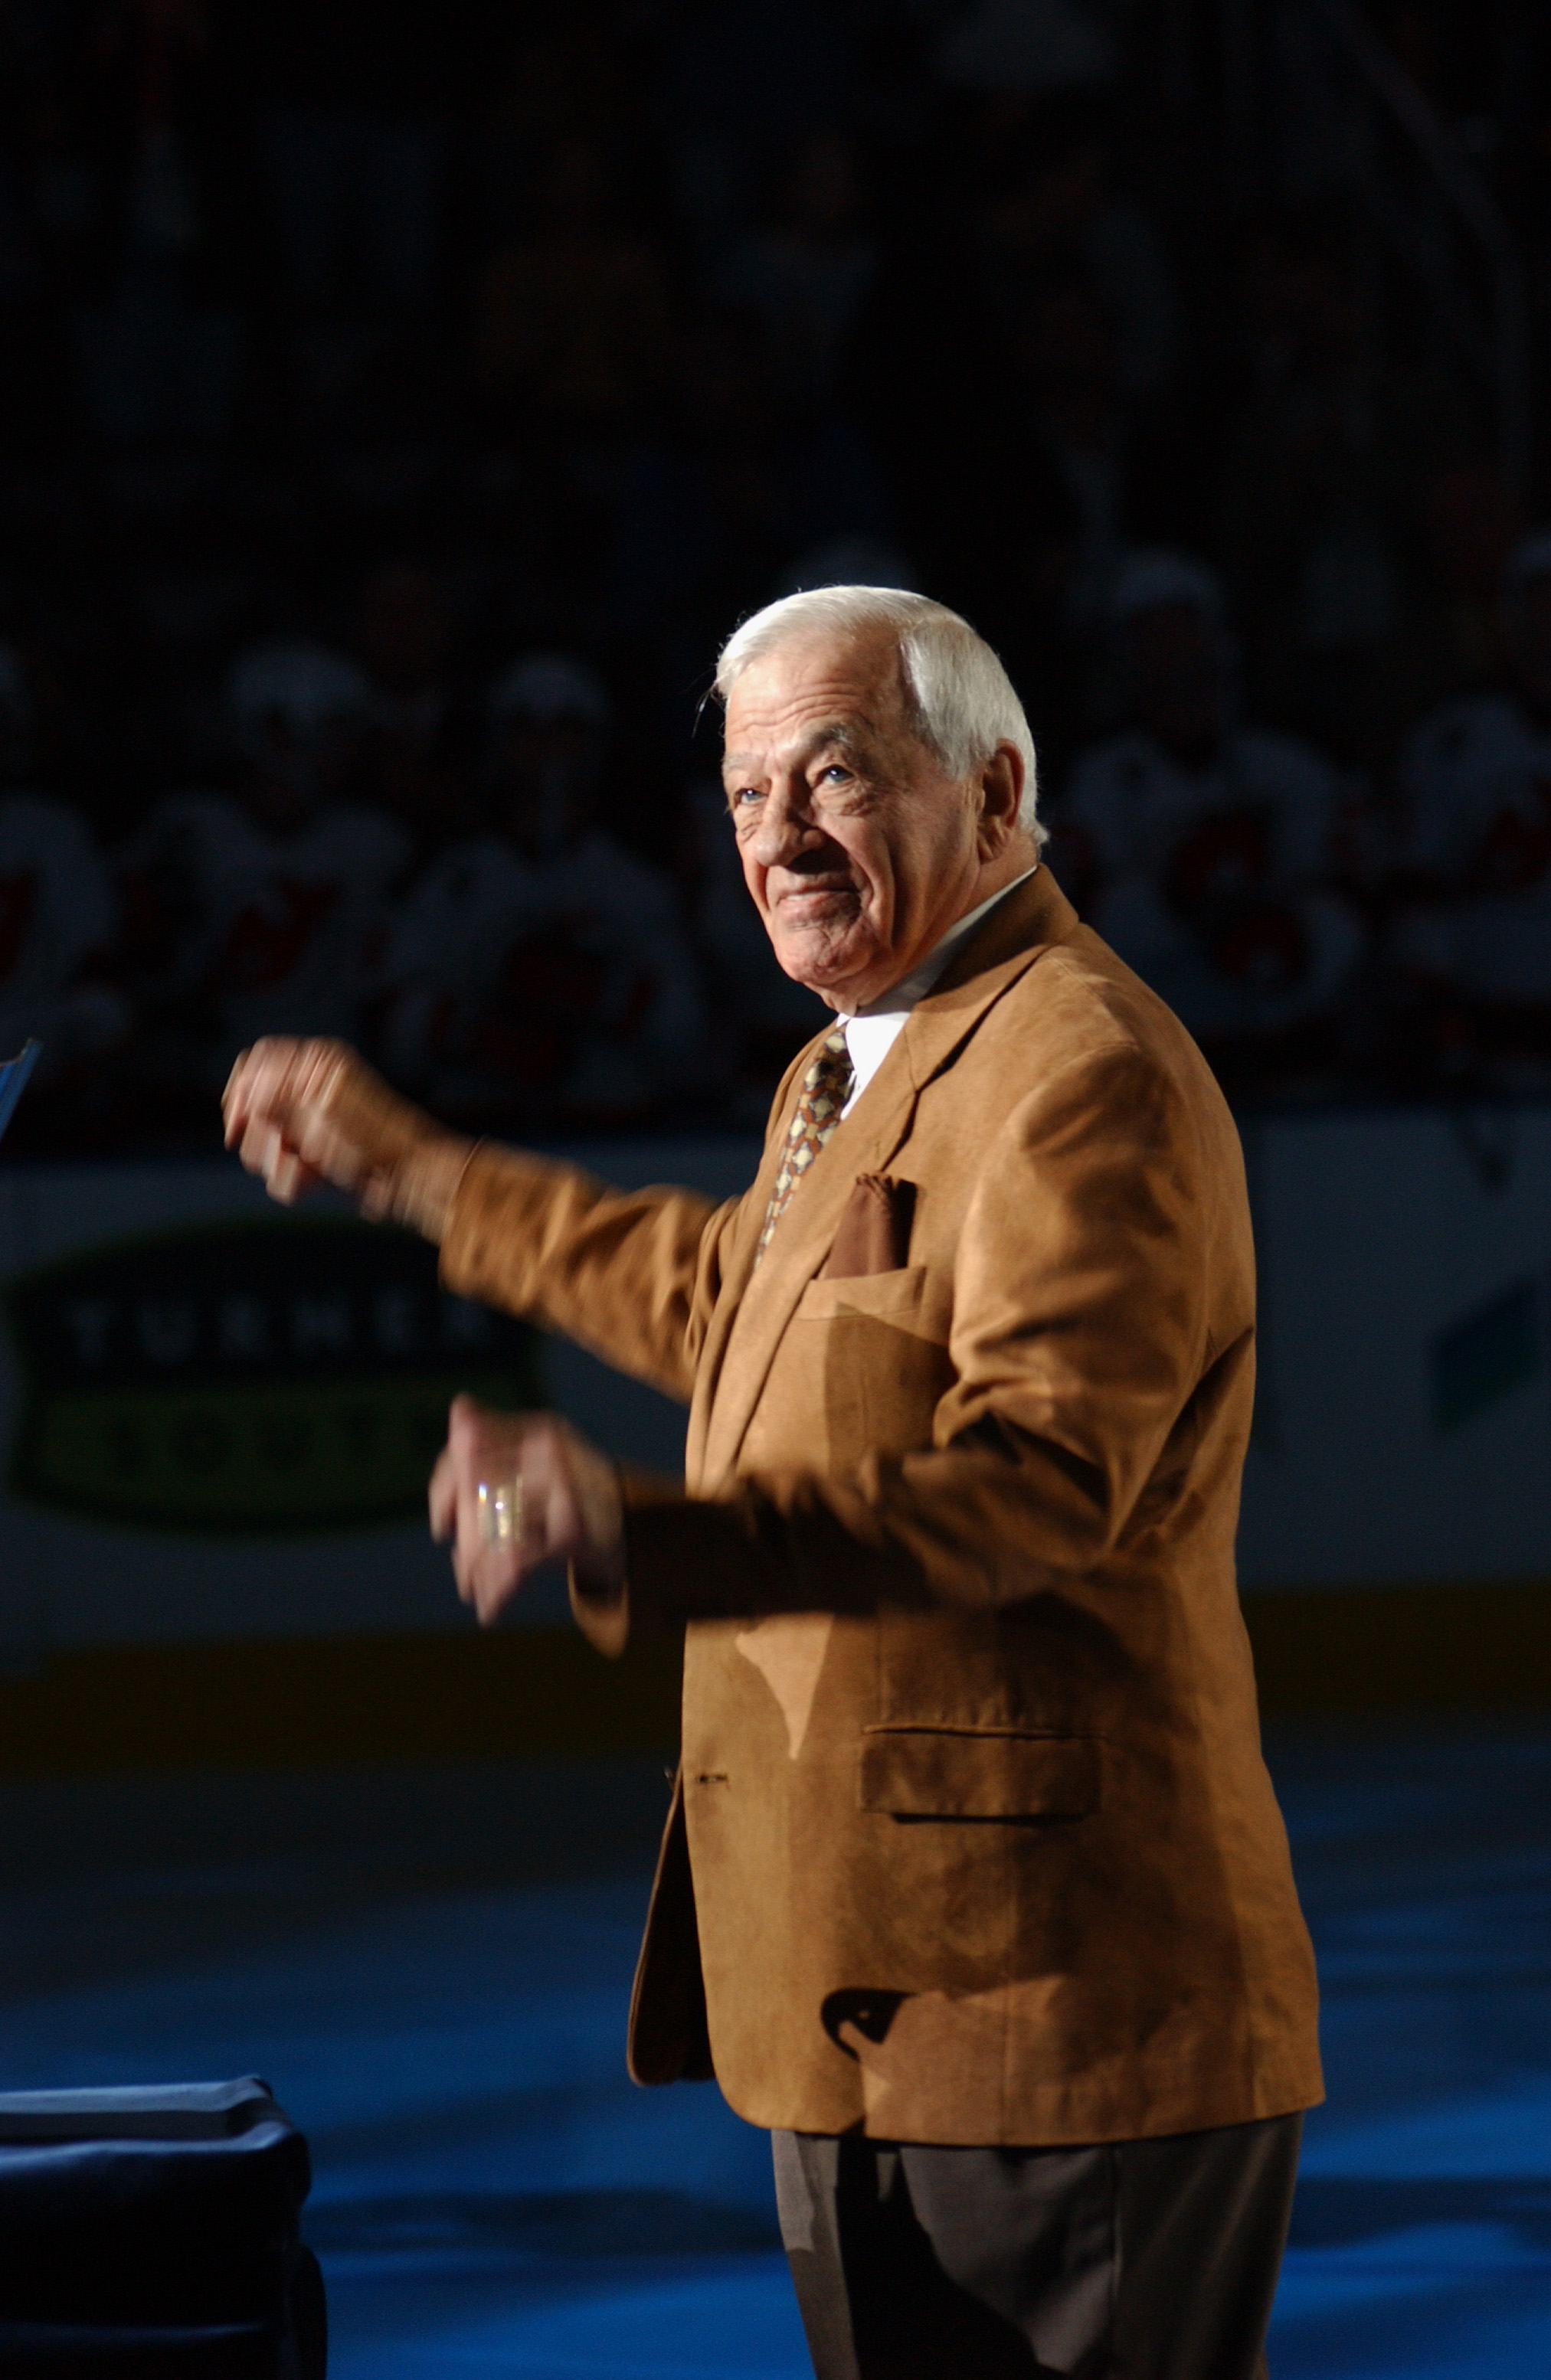 ATLANTA - OCTOBER 22:  Hockey legend Bernie 'Boom Boom' Geoffrion acknowledges the crowd after being introduced before the Atlanta Thrashers game against the New Jersey Devils on October 22, 2005 at Philips Arena in Atlanta, Georgia. The Thrashers won the